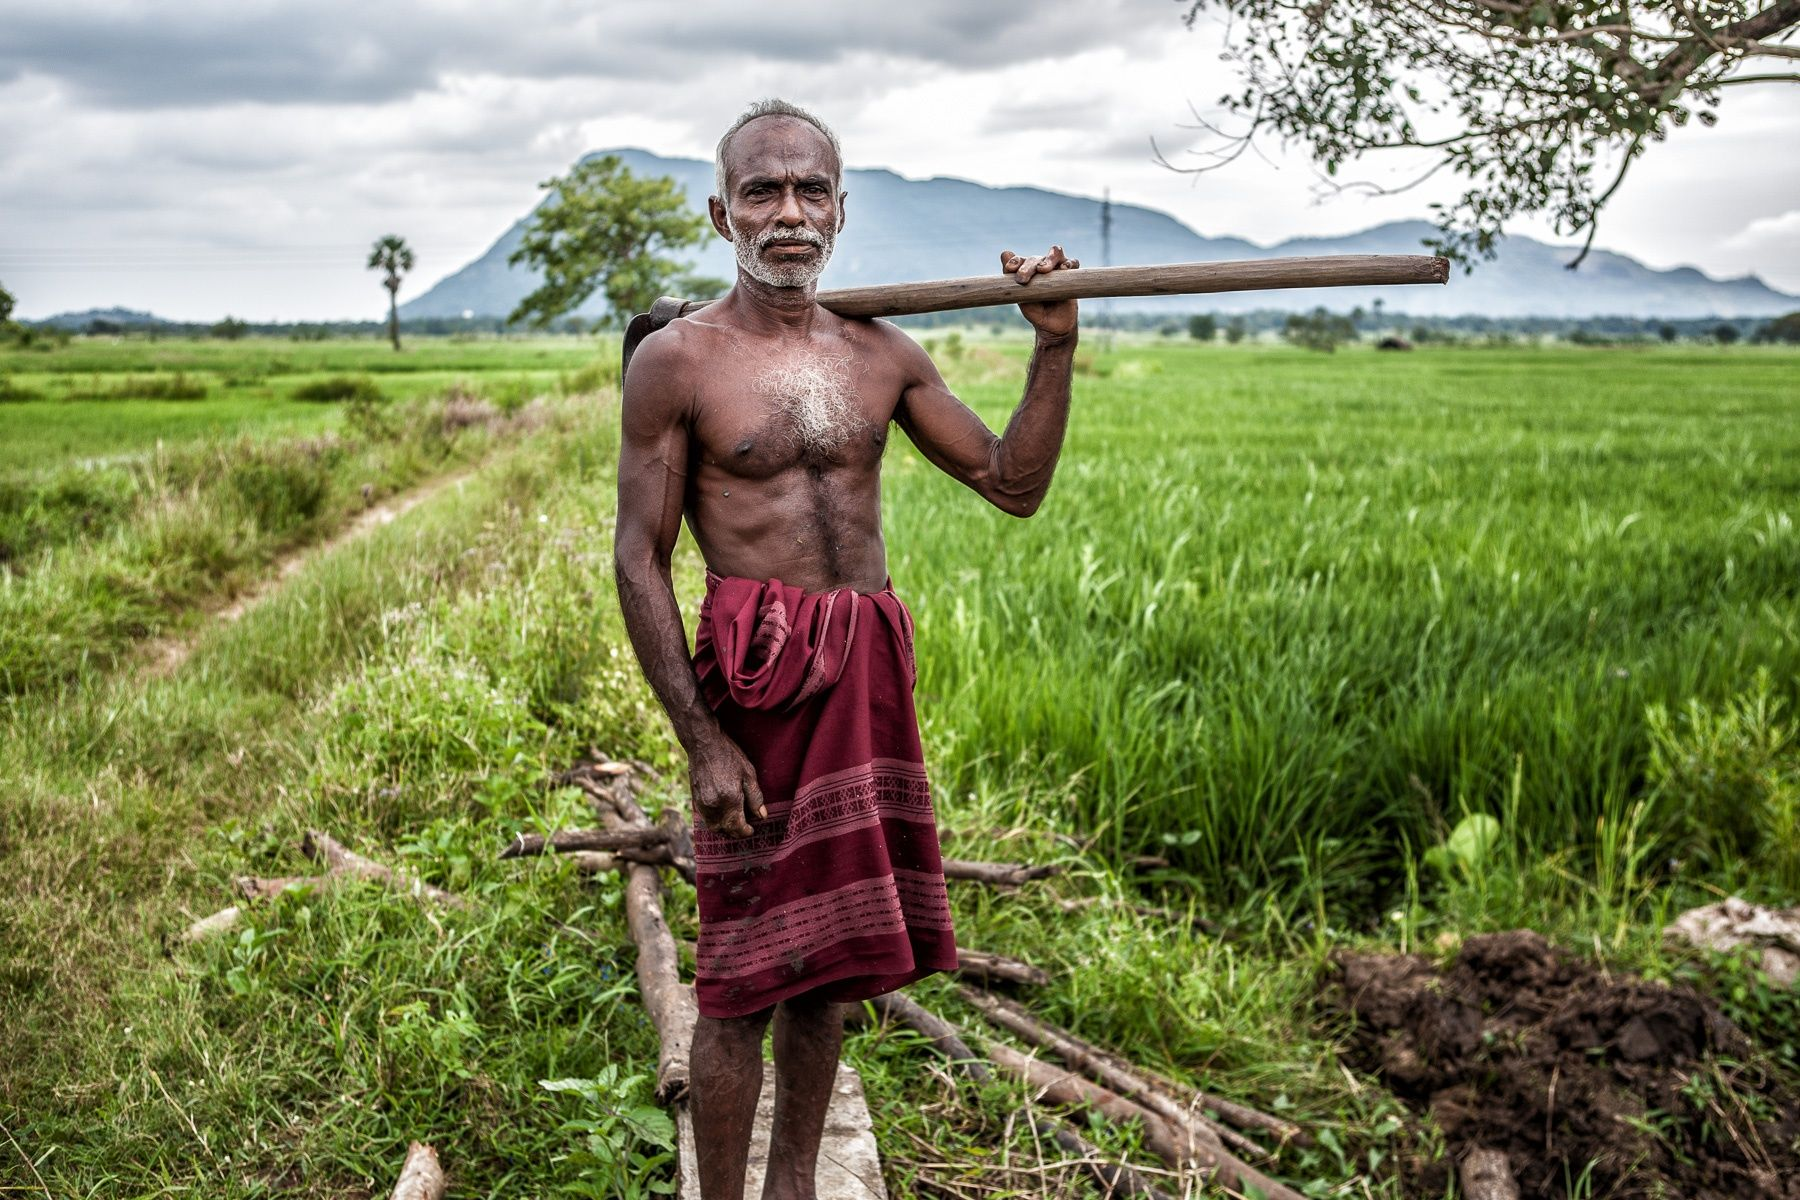 Sri-Lanka Farmer | Sri lanka, Sri lankan, World of color